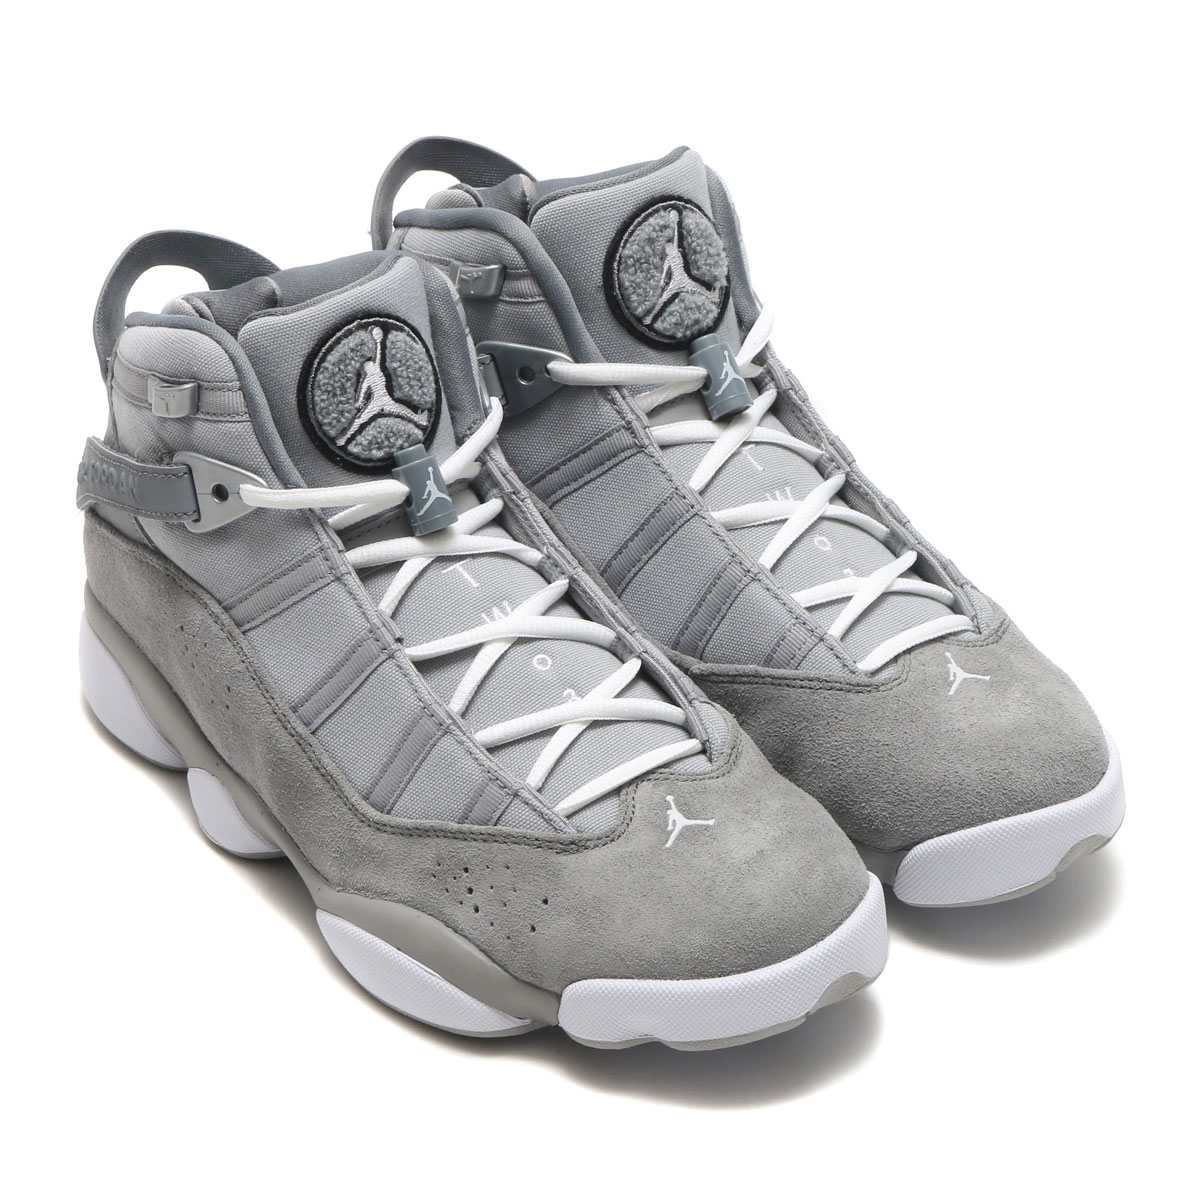 NIKE JORDAN 6 RINGS (ナイキ ジョーダン 6 リングス) MATTE SILVER/WHITE-COOL GREY-BLACK【メンズ スニーカー】17SU-S